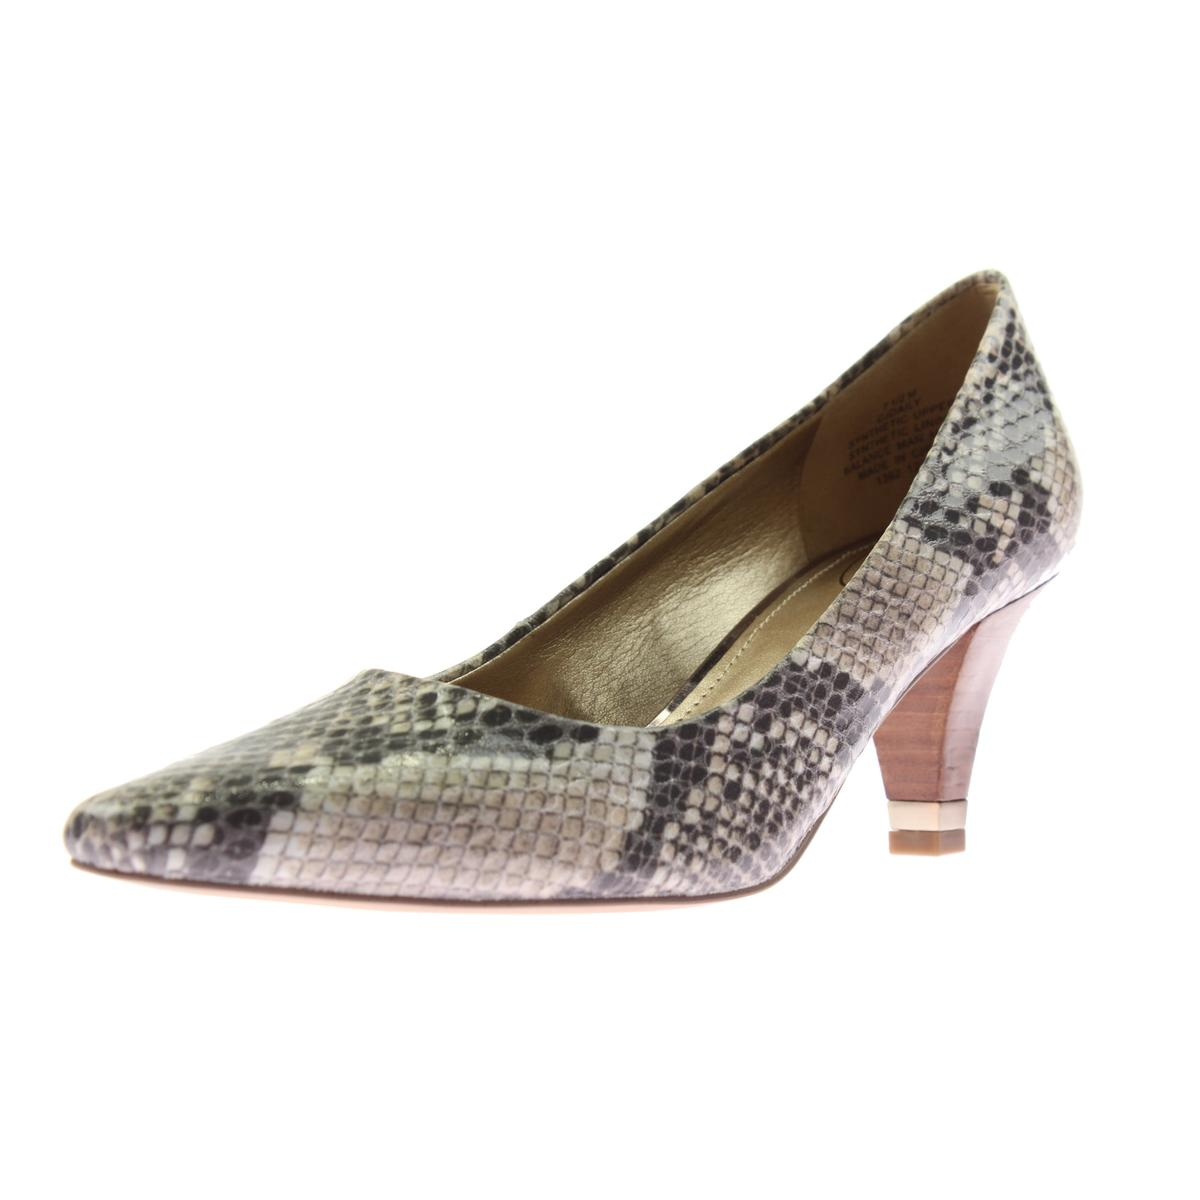 Circa Joan & David Womens Daily Snake Print Stacked heel ...